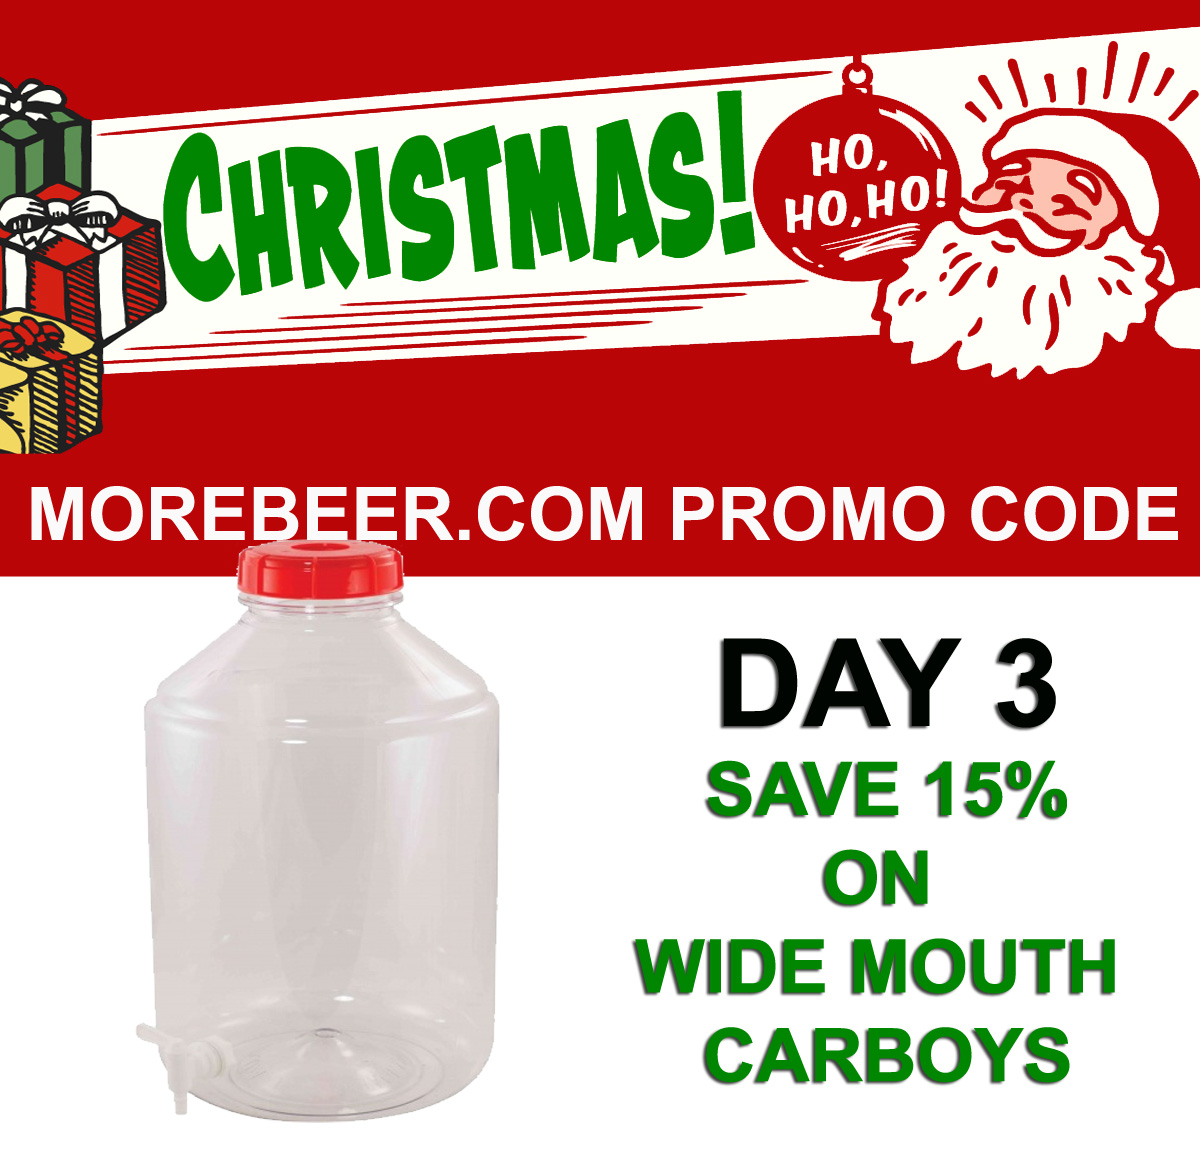 Home Wine Making Coupon Codes for Save 15% On FerMonster Wide Mouth Home Brewing Carboys Coupon Code